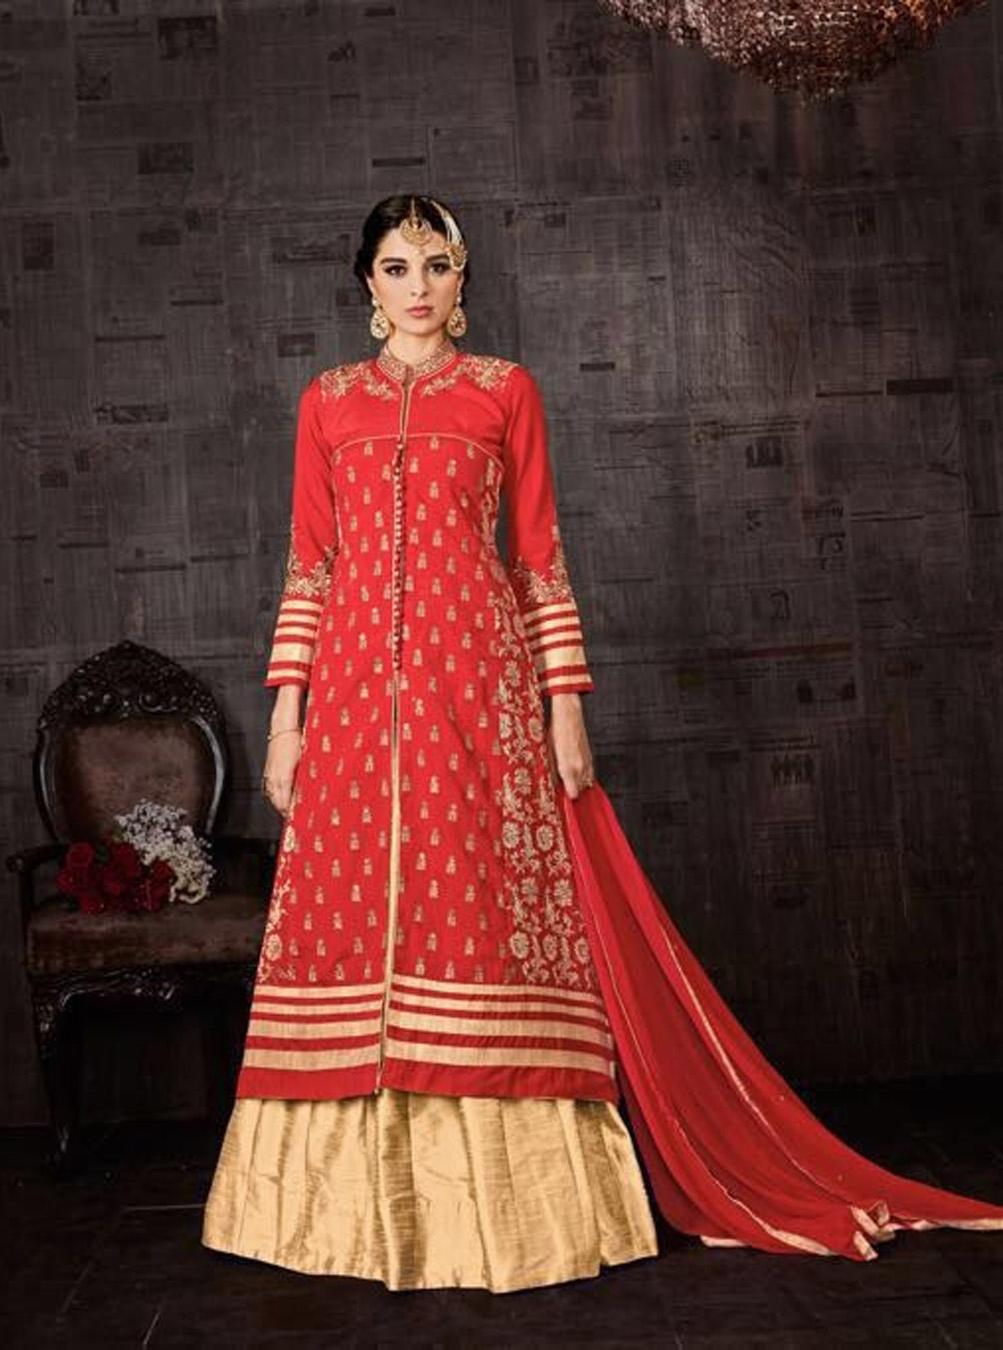 d6191e6d3a Buy AASHIRWAD CREATION Clothing at Best Prices Online in Bangladesh ...